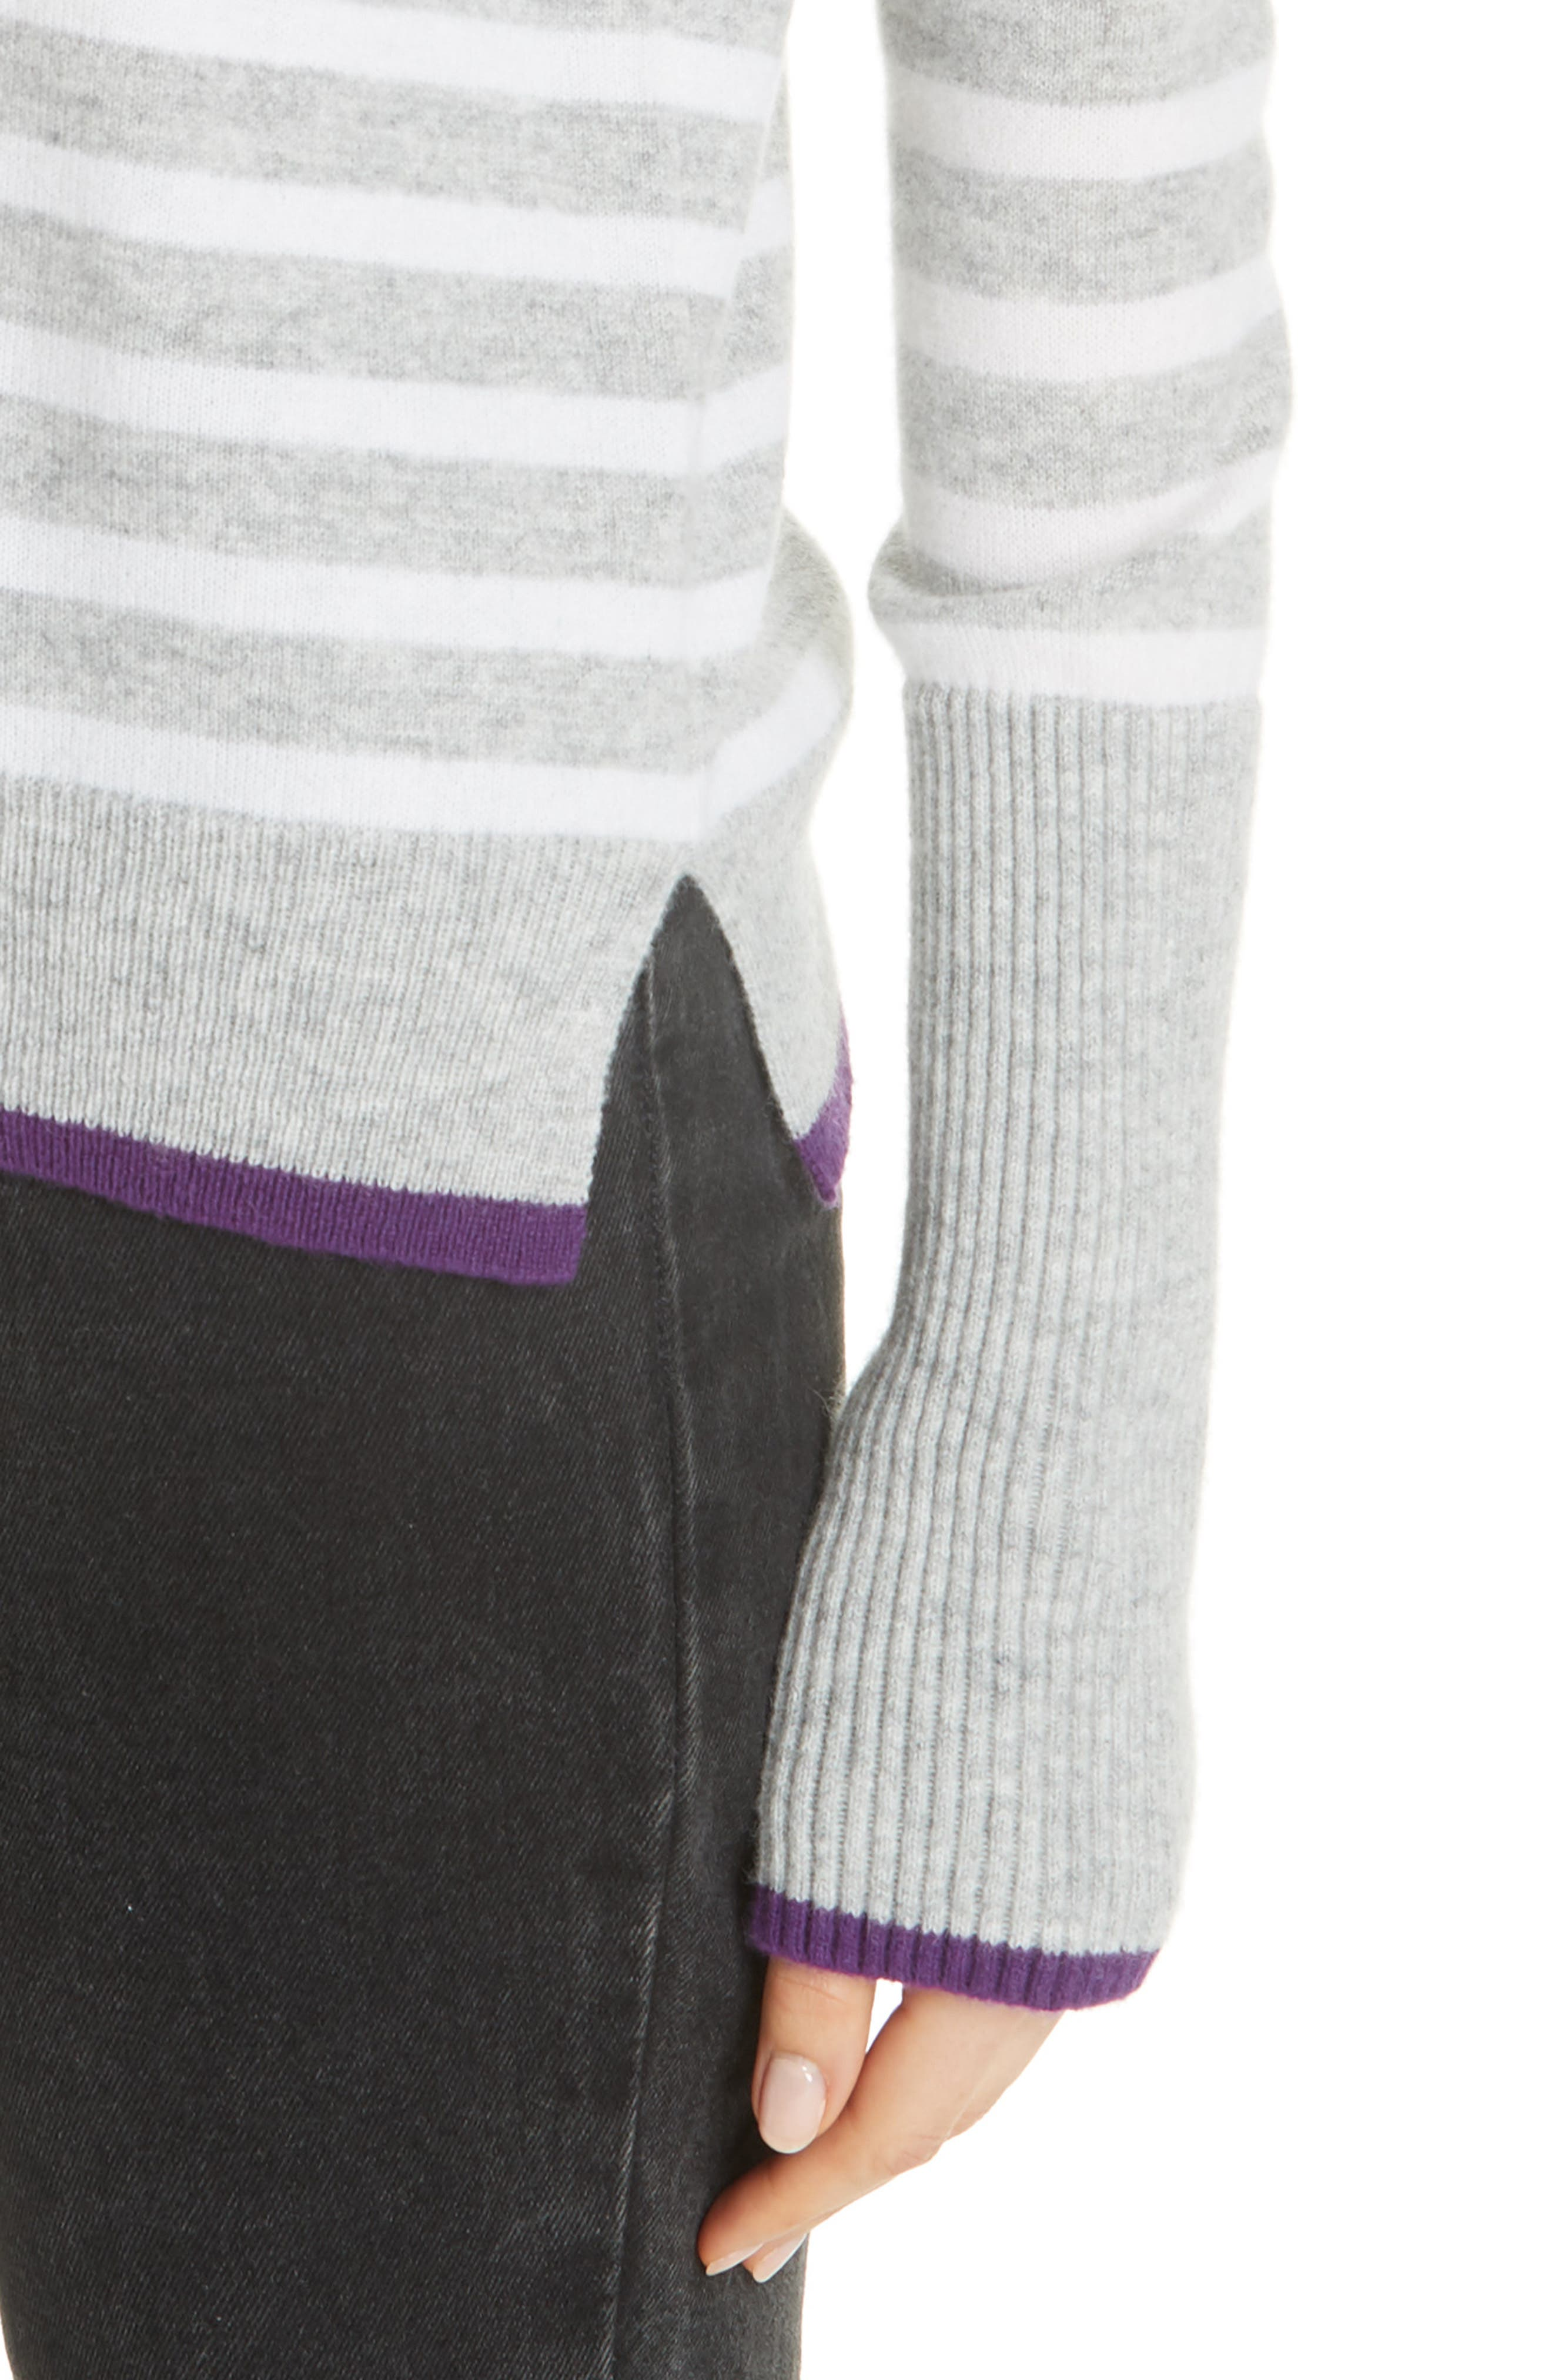 AAA Lean Lines Cashmere Sweater,                             Alternate thumbnail 4, color,                             GREY MARLE/ CREAM/ PURPLE